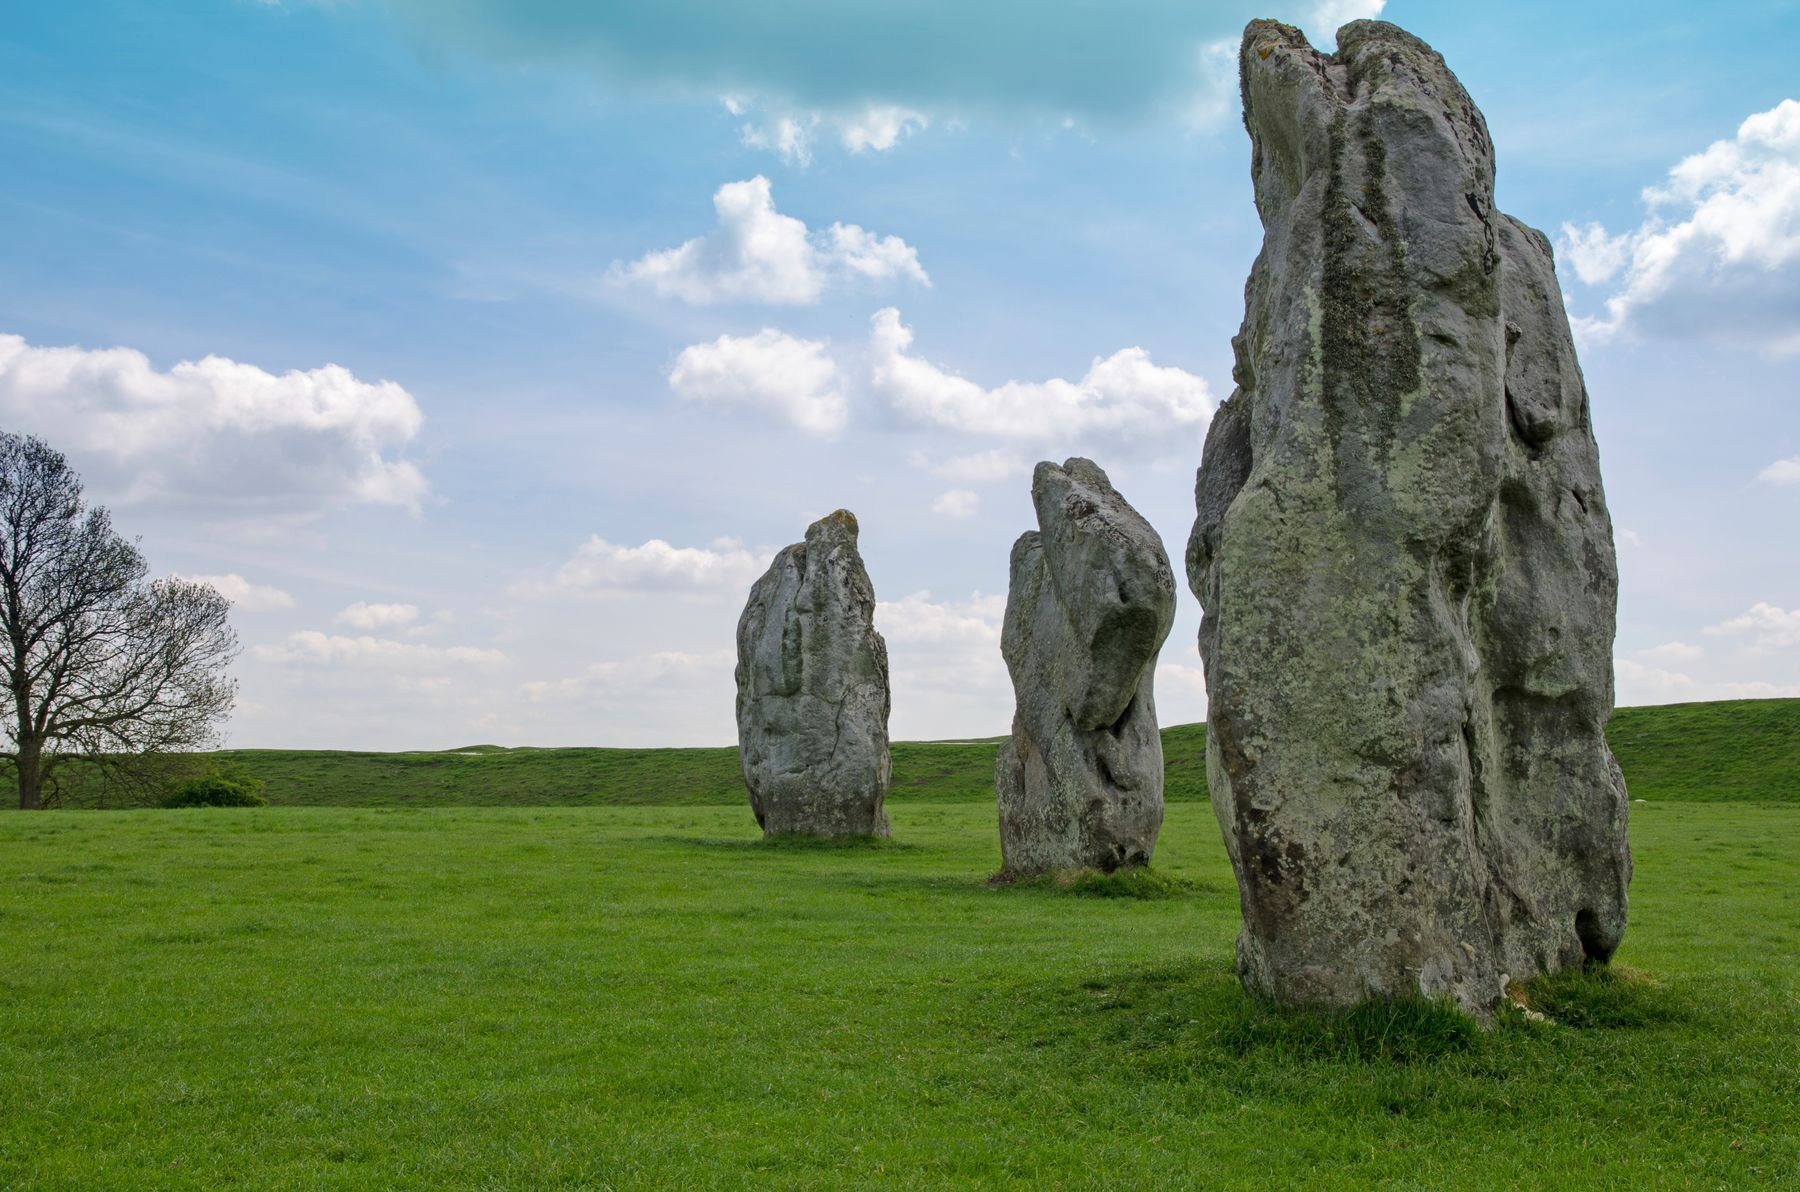 Avebury stone circle predates Stonehenge by five centuries